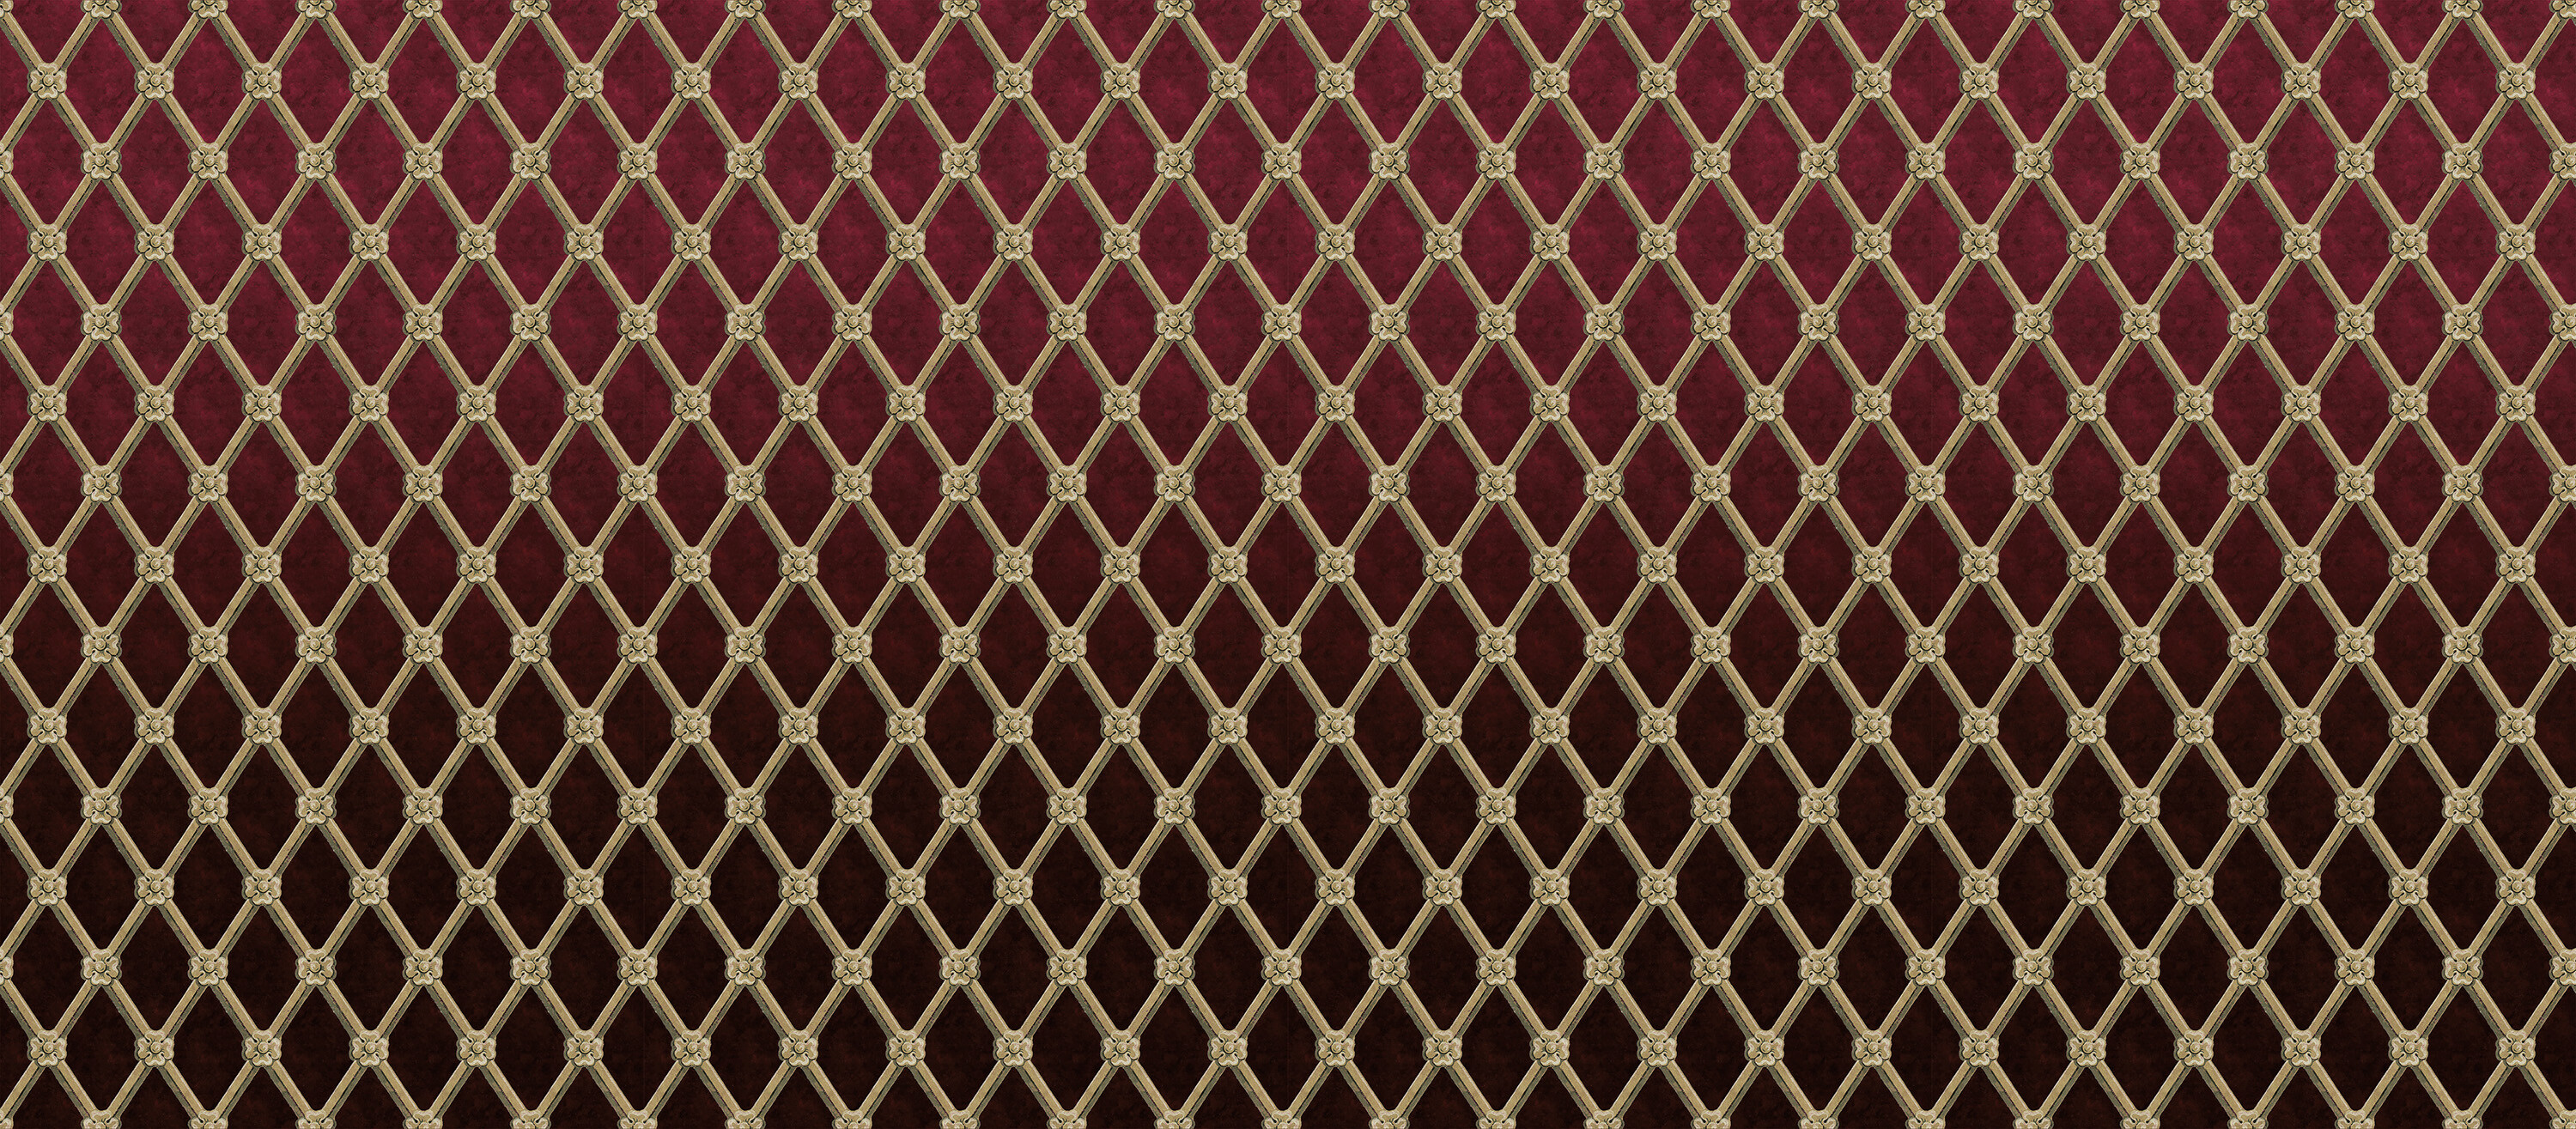 Uppark Trellis Bordeaux Red